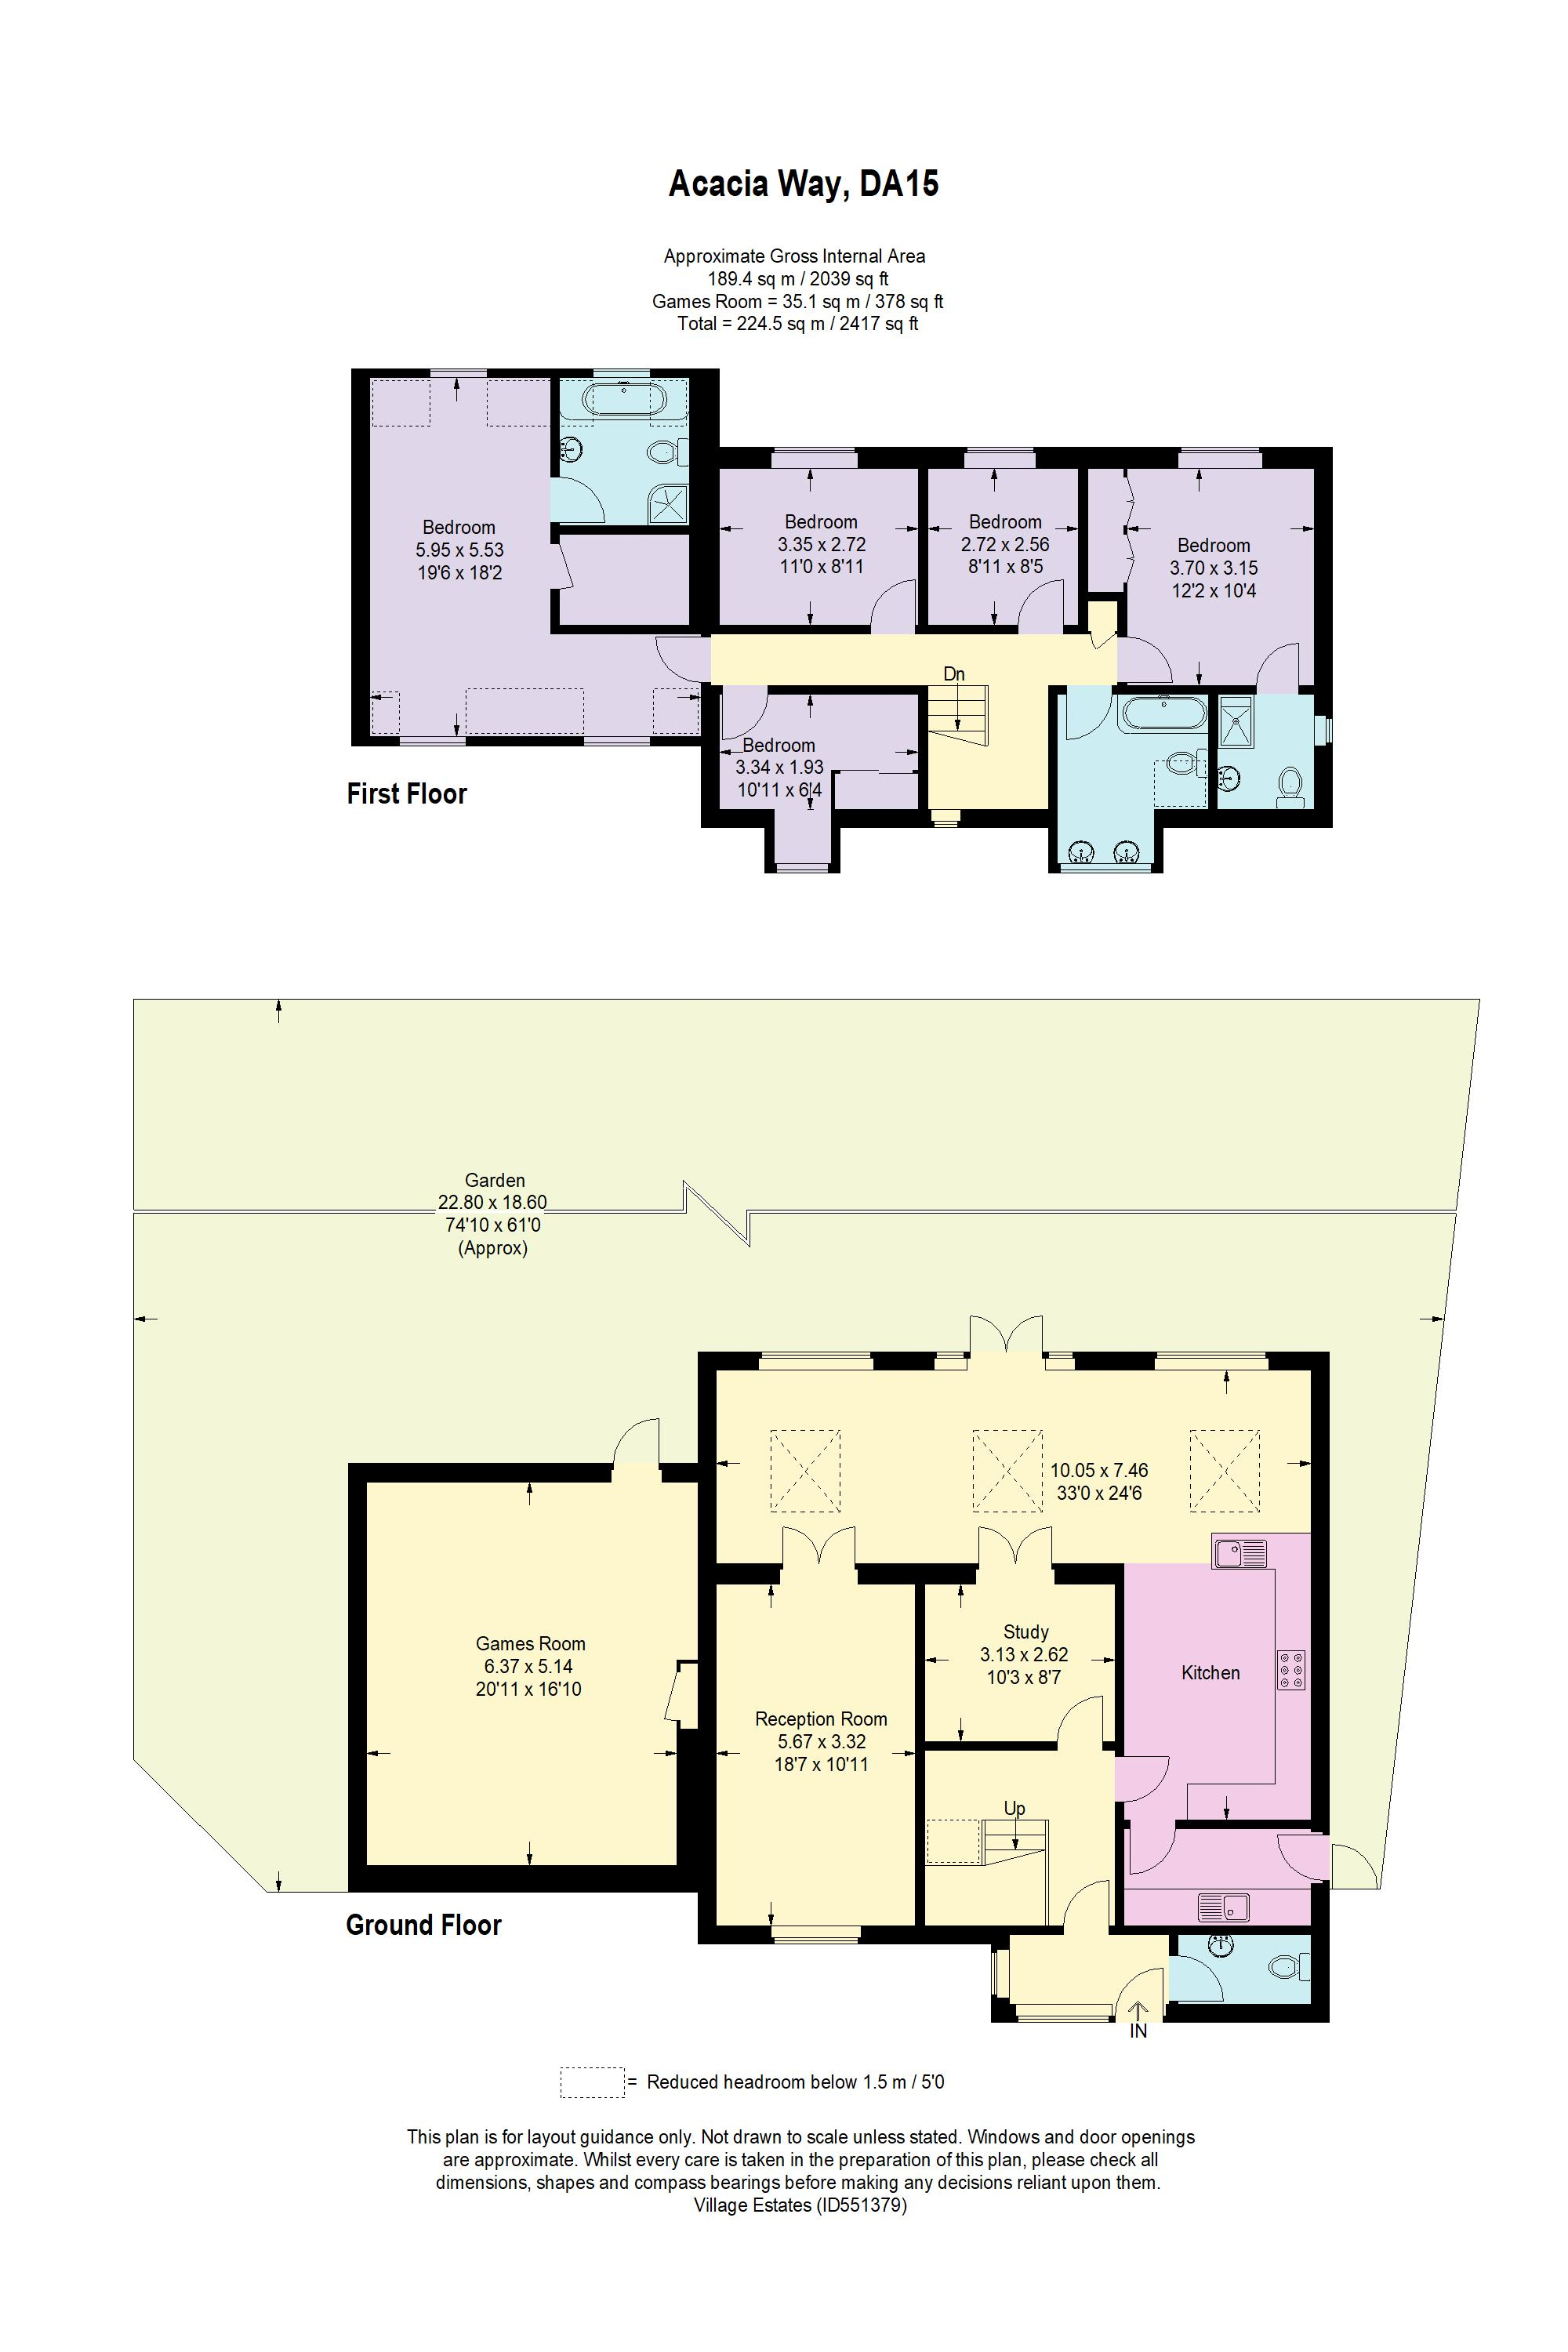 Acacia Way Floorplan